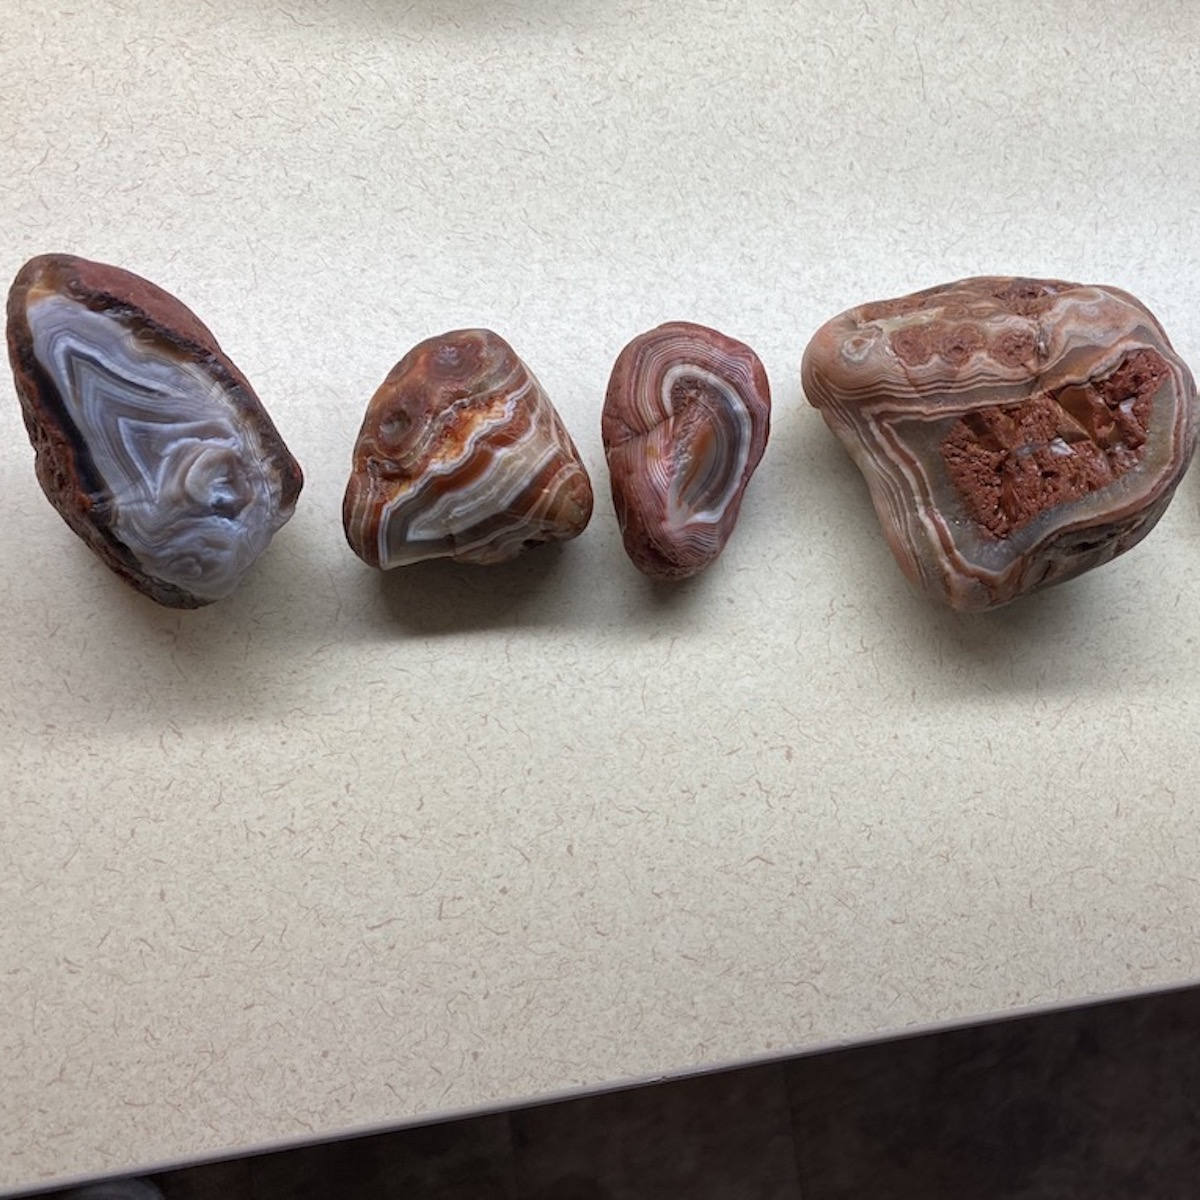 Lake Superior Agates From Russ Clarke's Collection